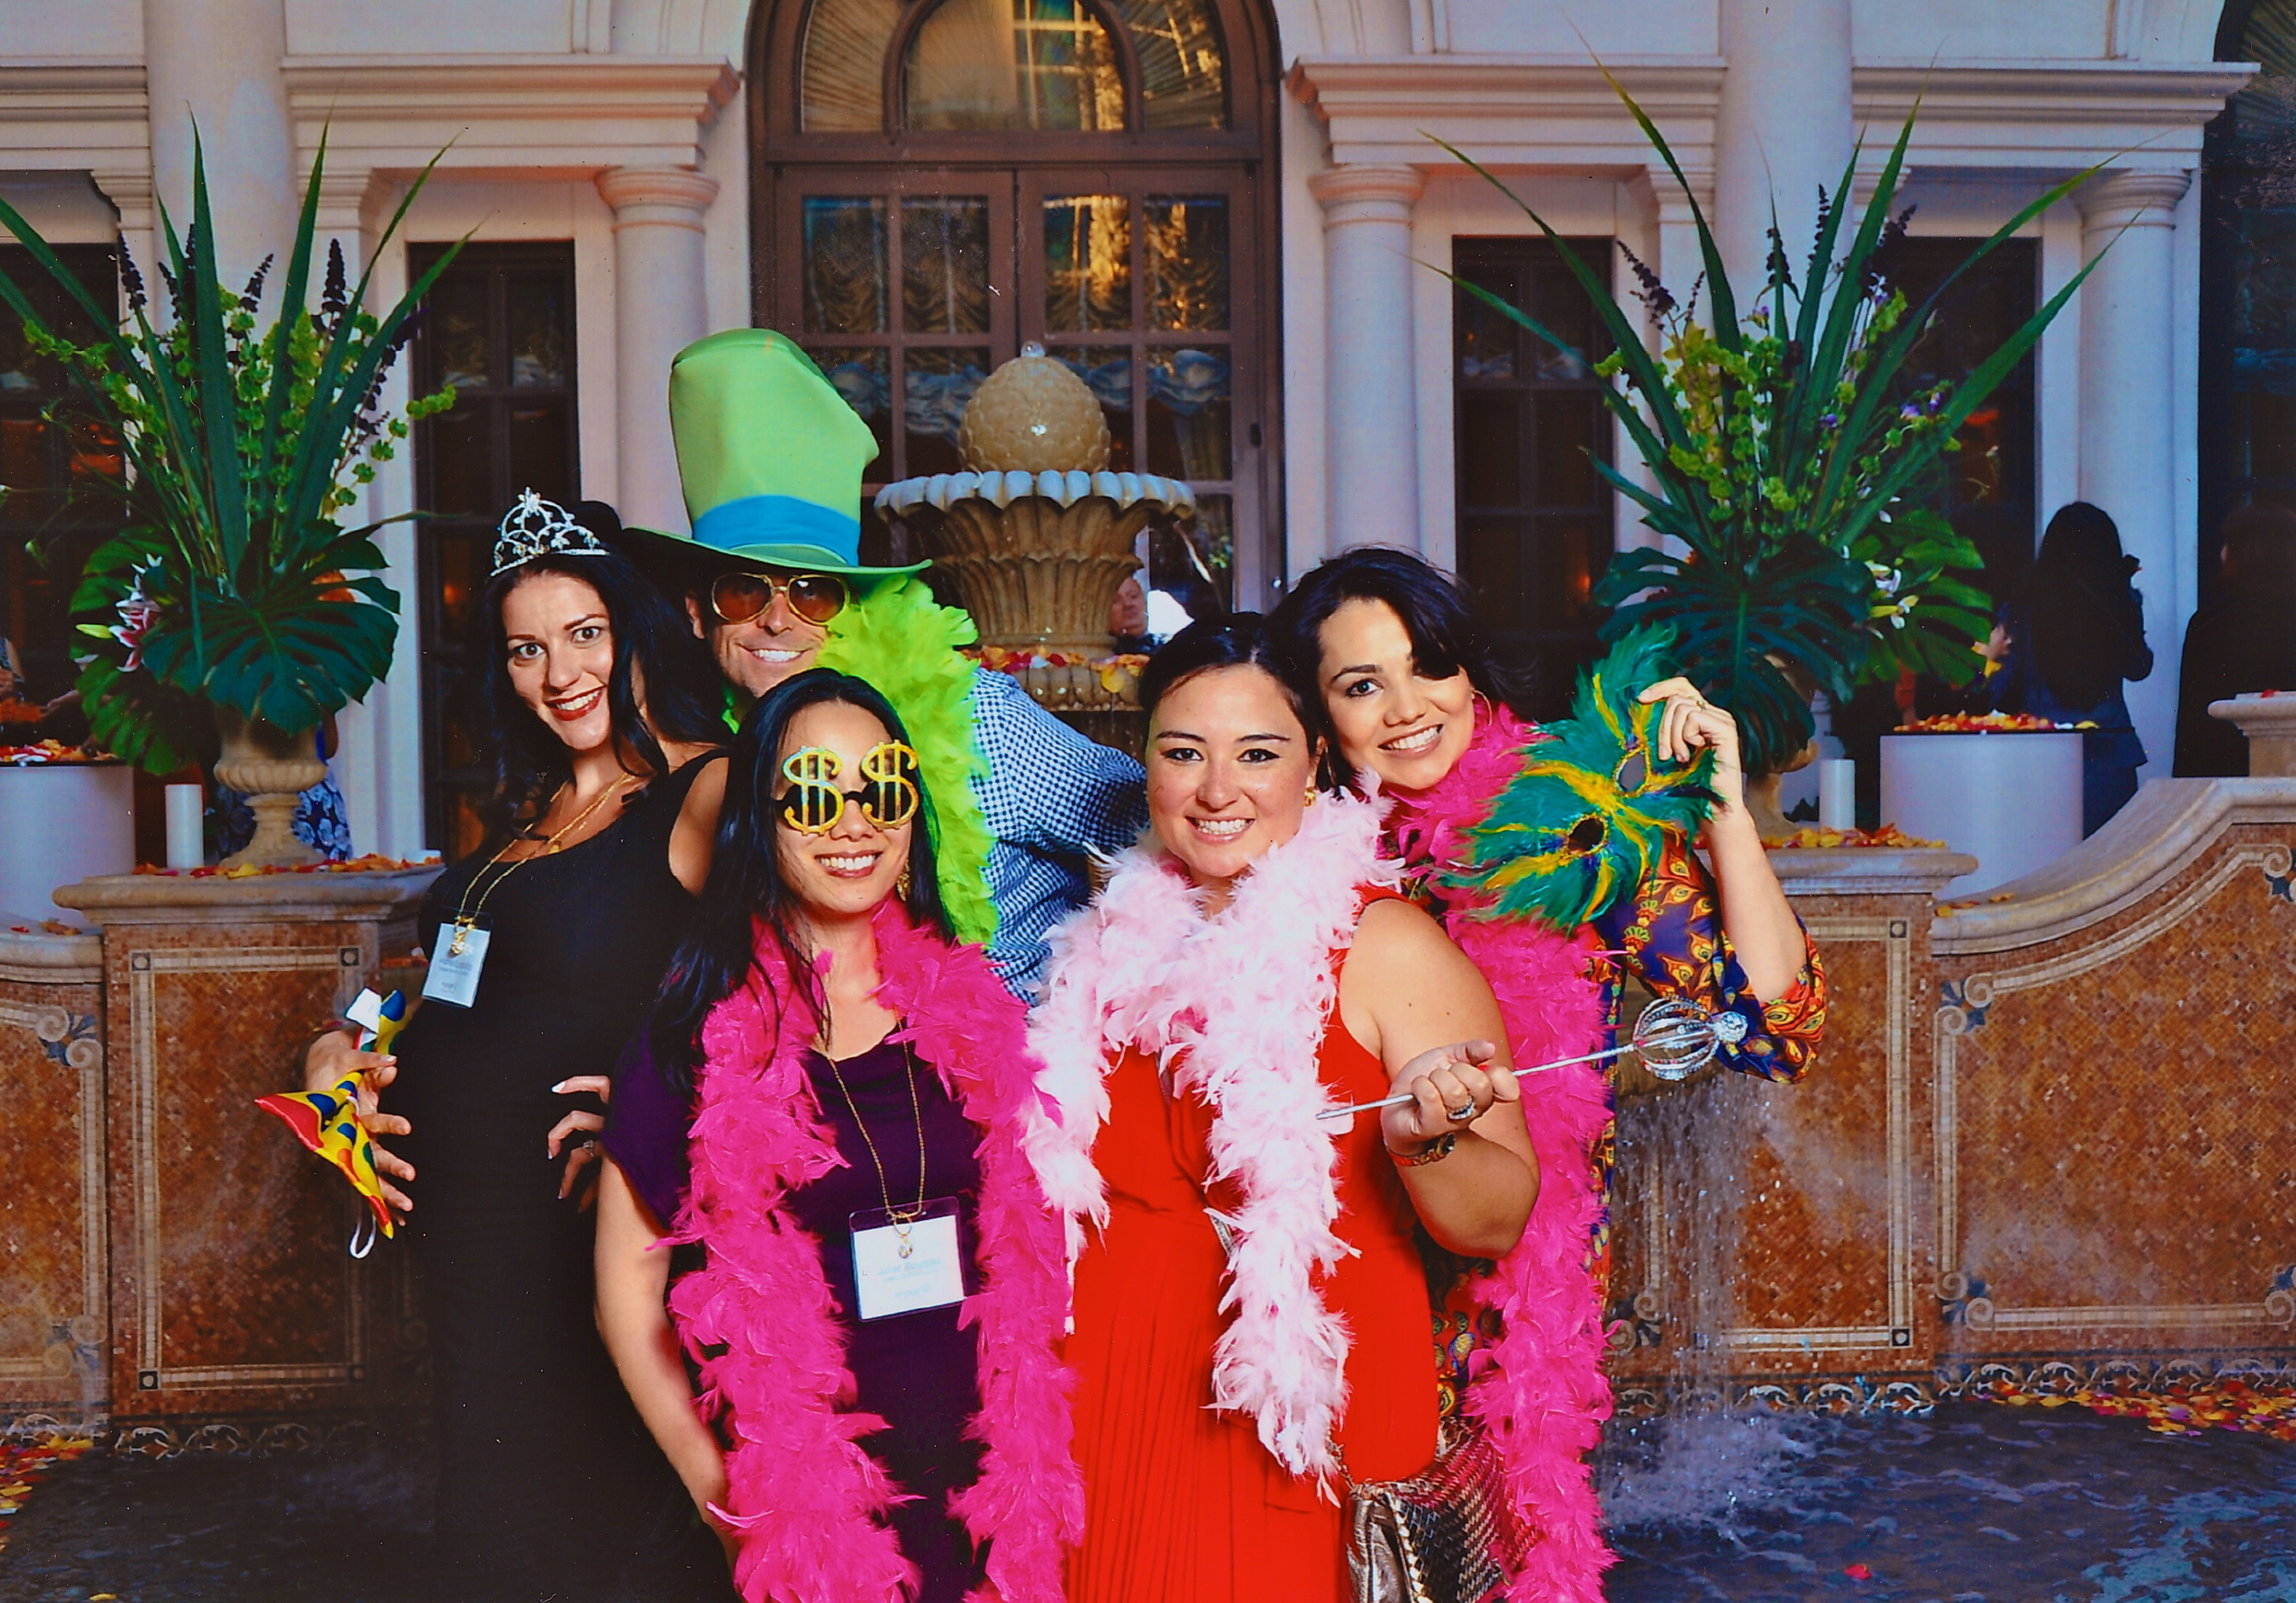 Seriously! This is what happens when wedding planners party! Notice Brian Worley's hand on my bump! Love it!